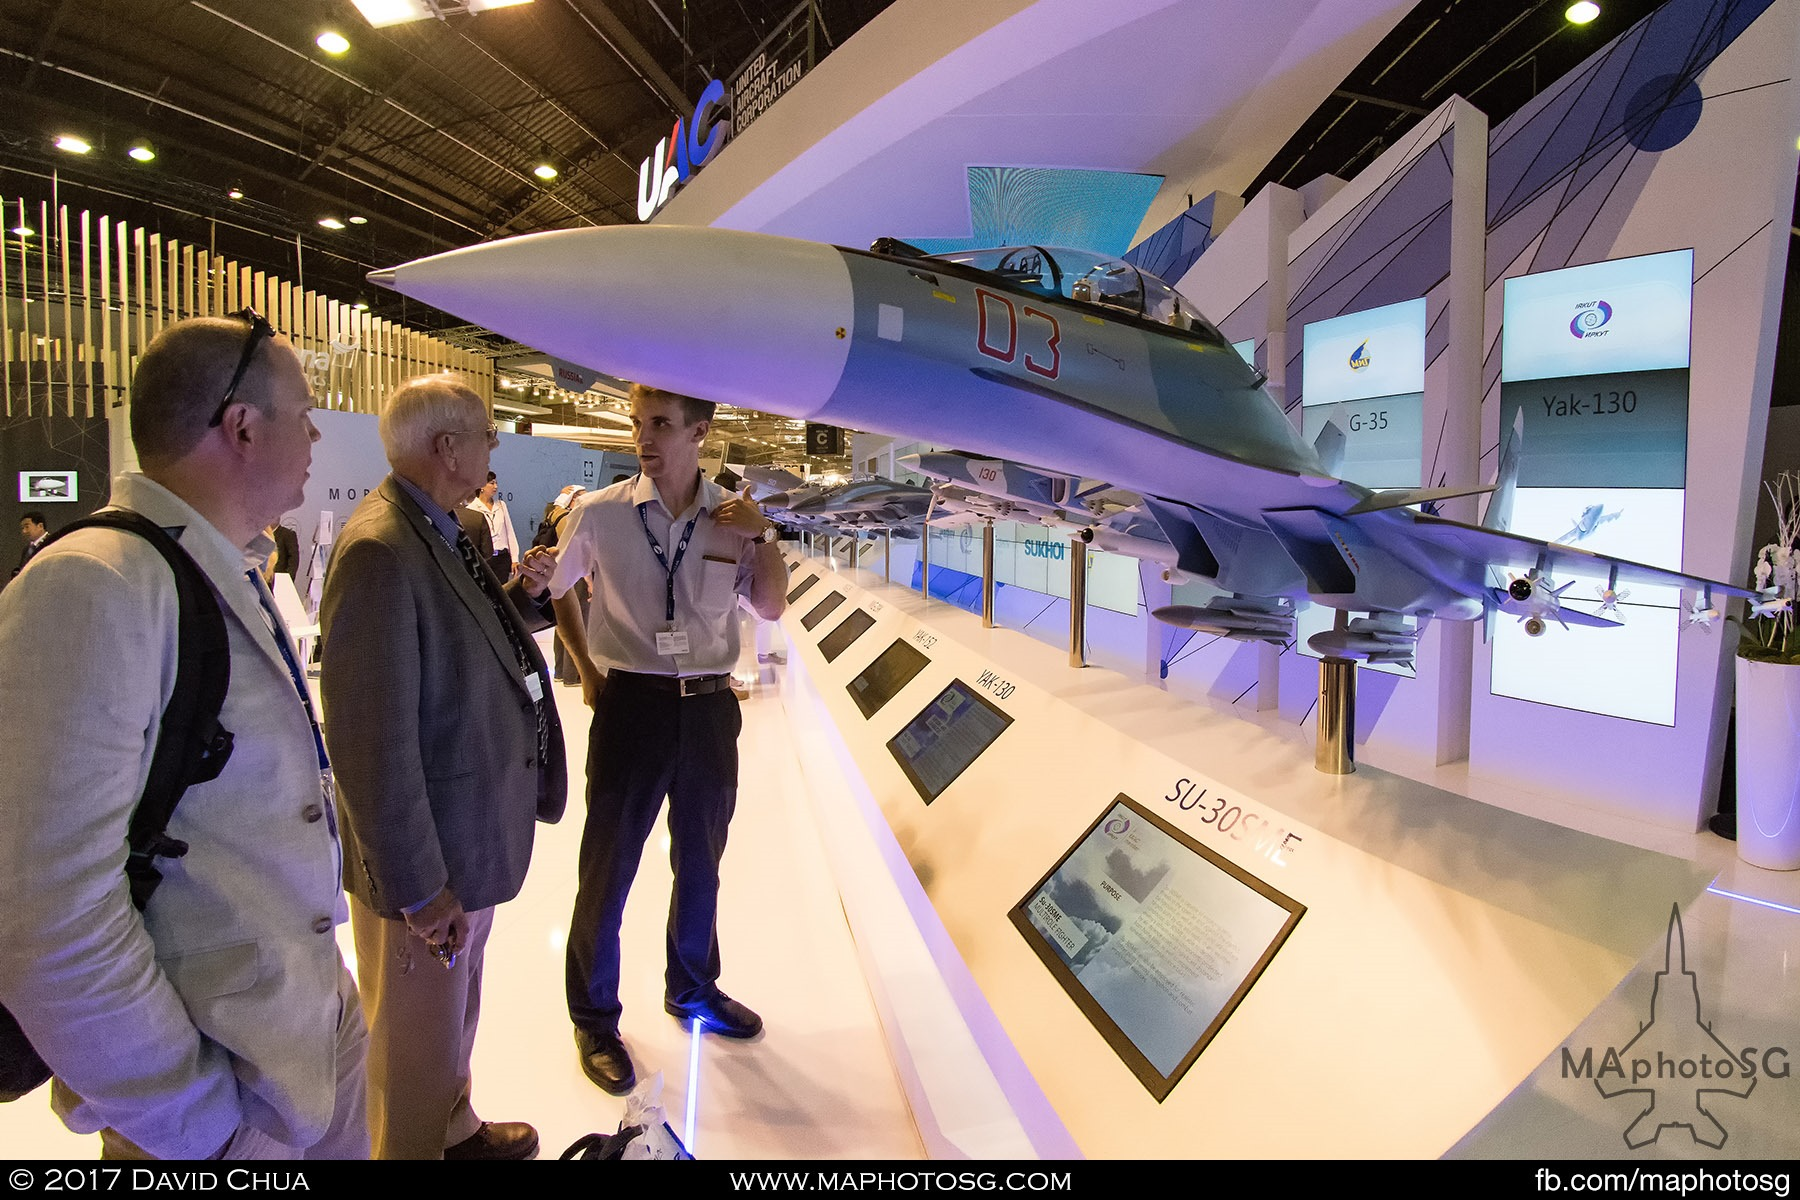 17. A representative from the United Aircraft Corporation explains the details of the SU-30SME to two interested gentlemen.